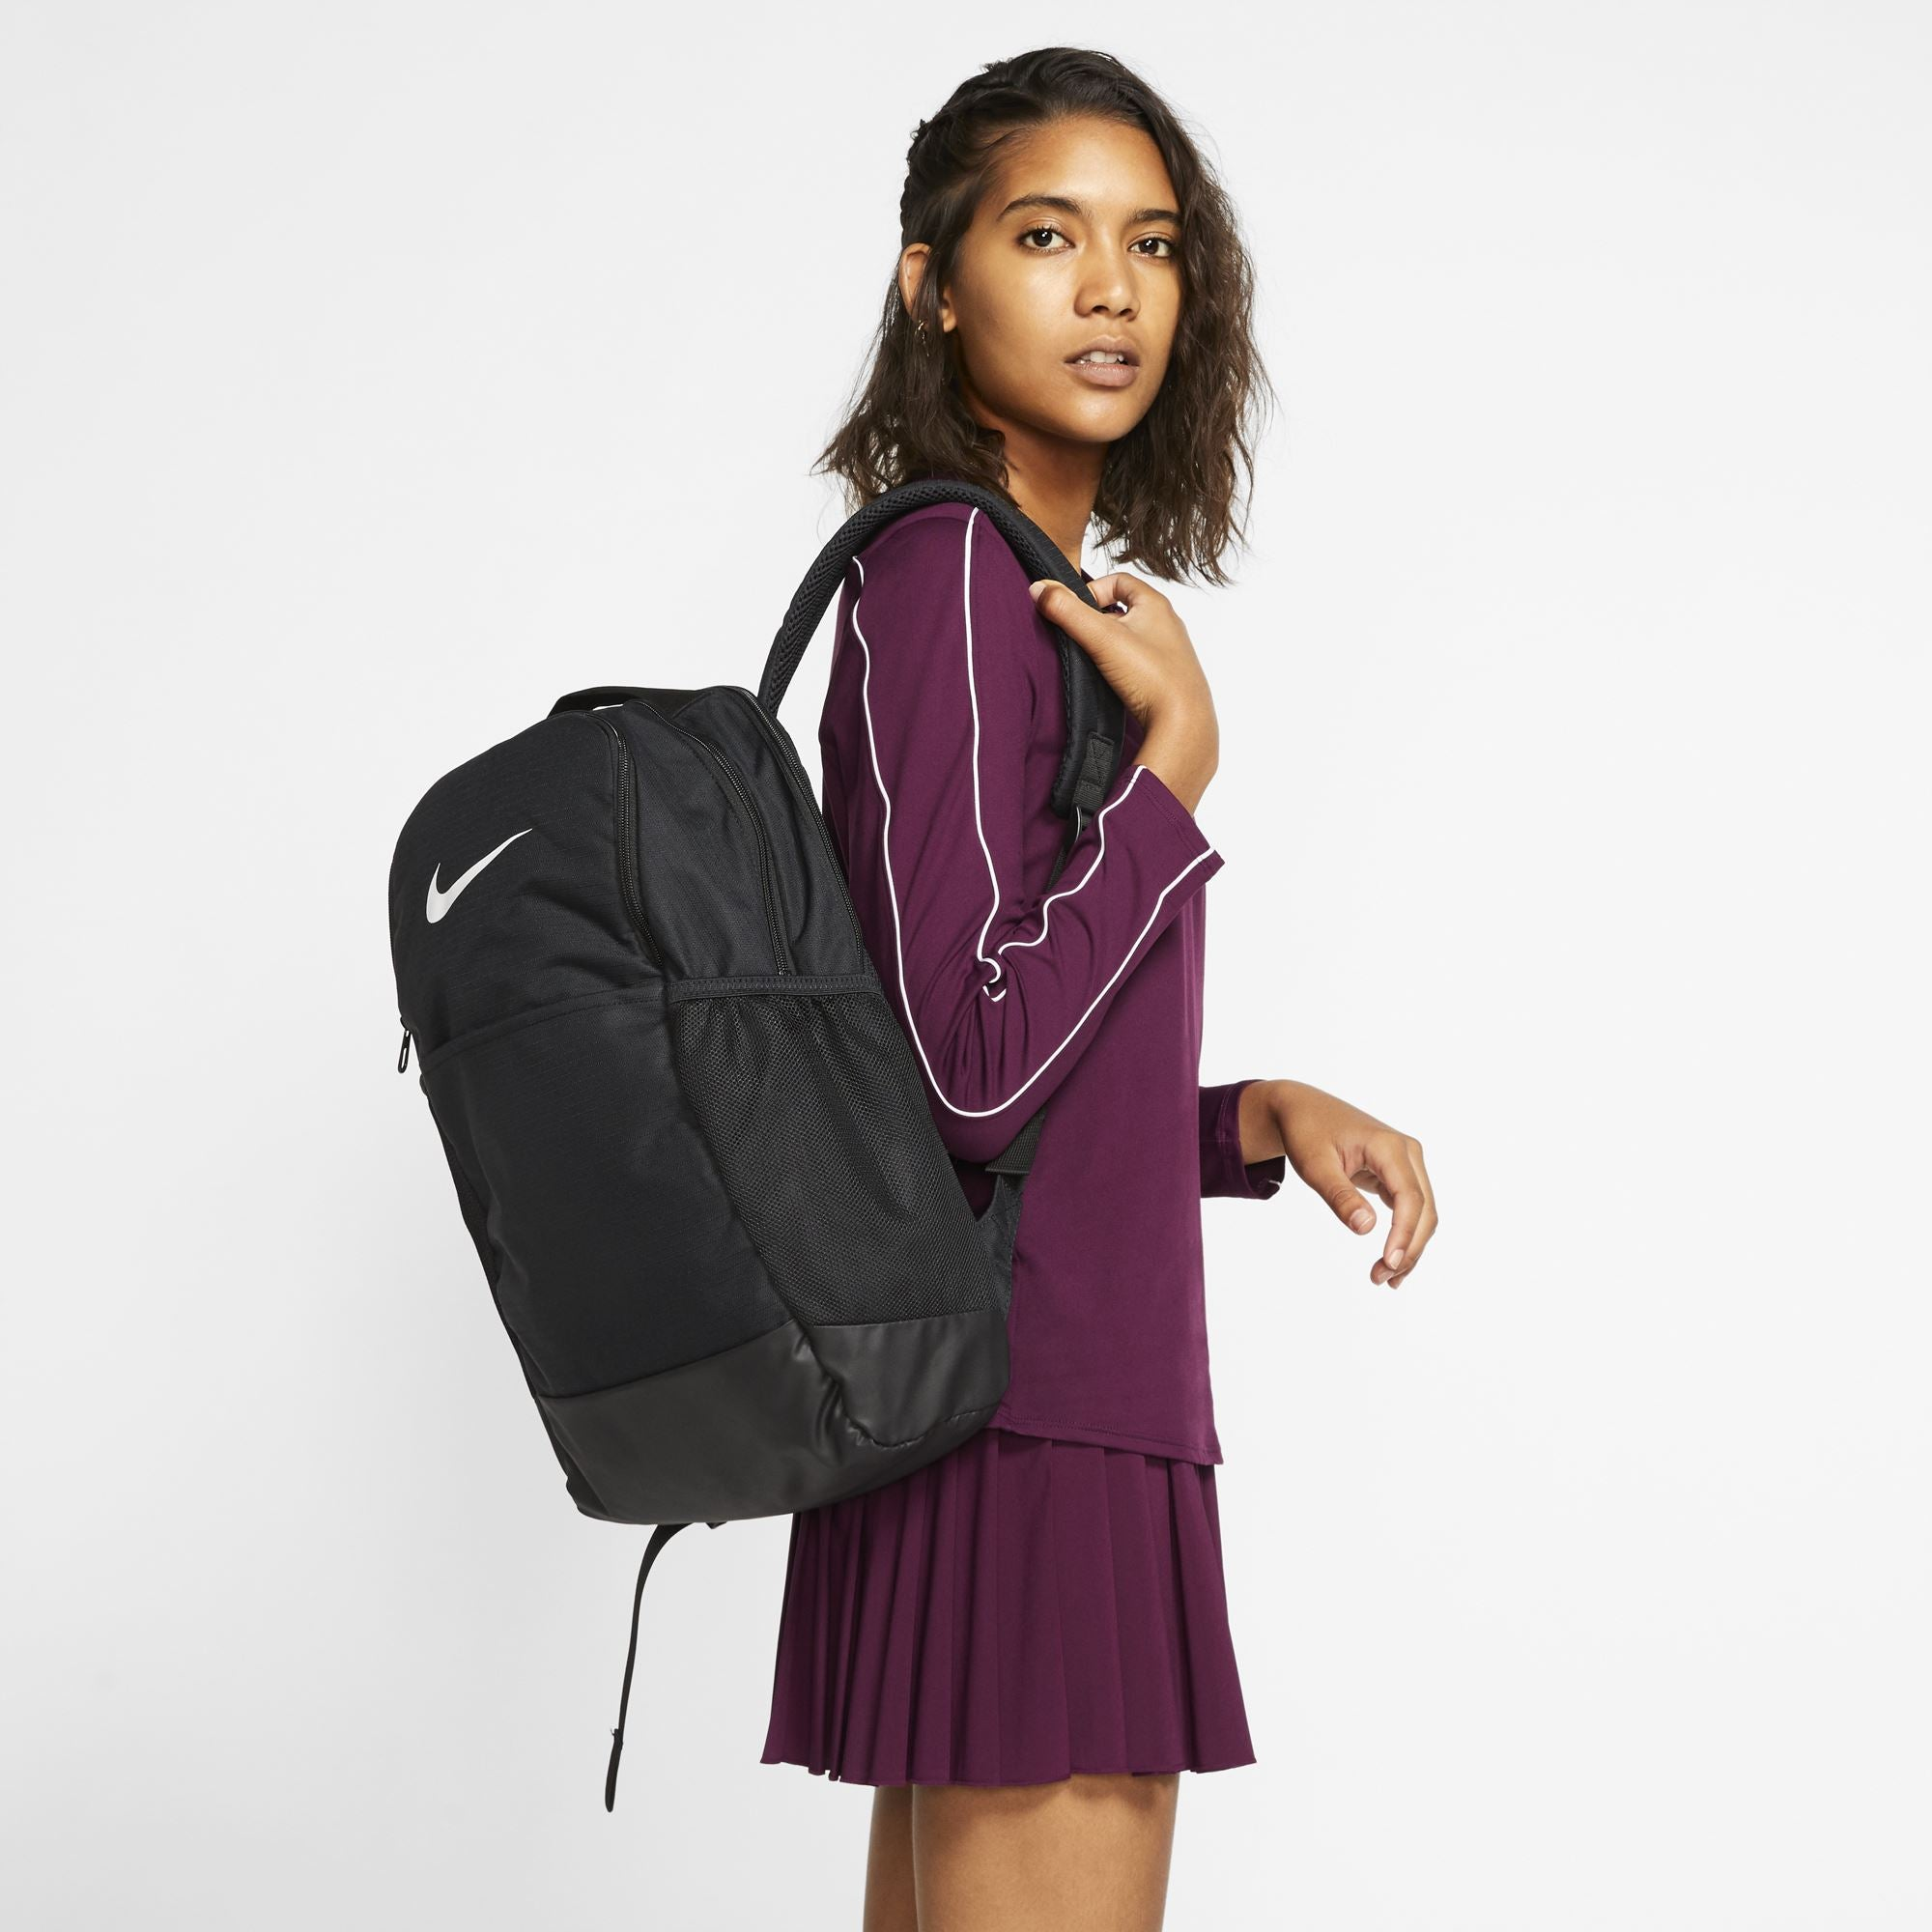 Nike Brasilia M Training Backpack (Medium) - Black/Black/White SP-Accessories-Bags Nike